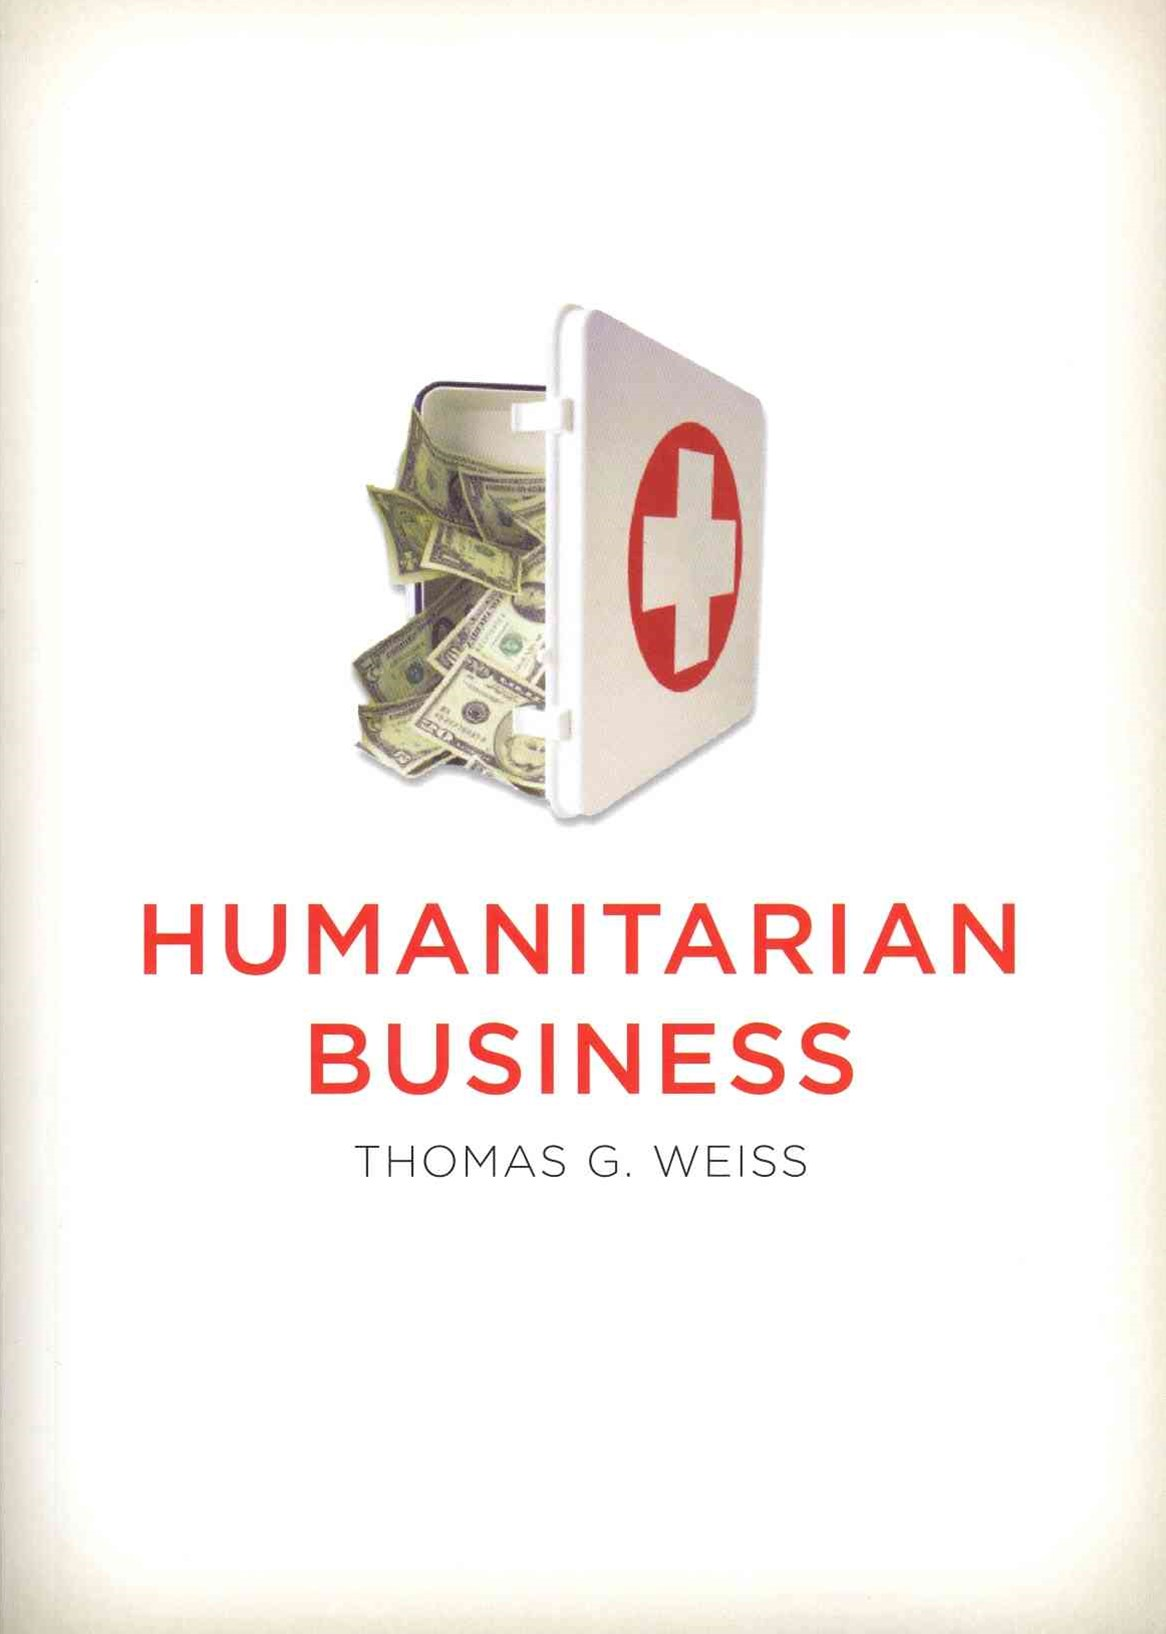 The Humanitarian Business